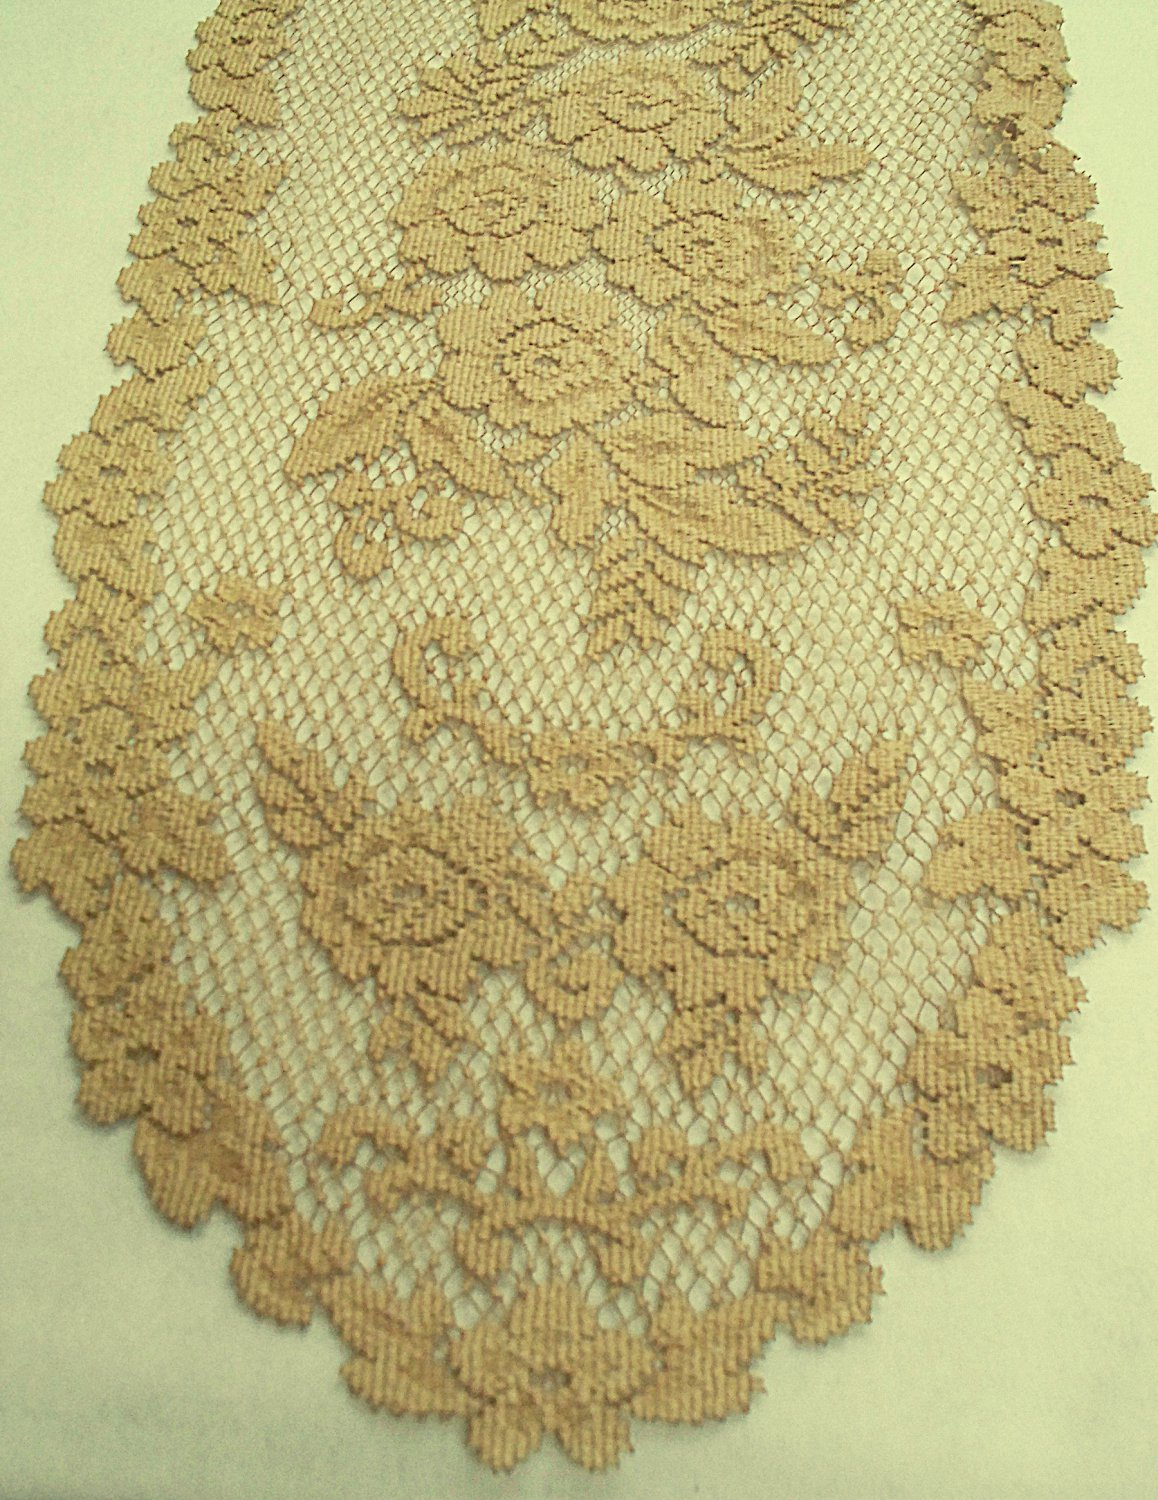 Victorian Rose Table Runner 13 x 54 Antique Heritage Lace